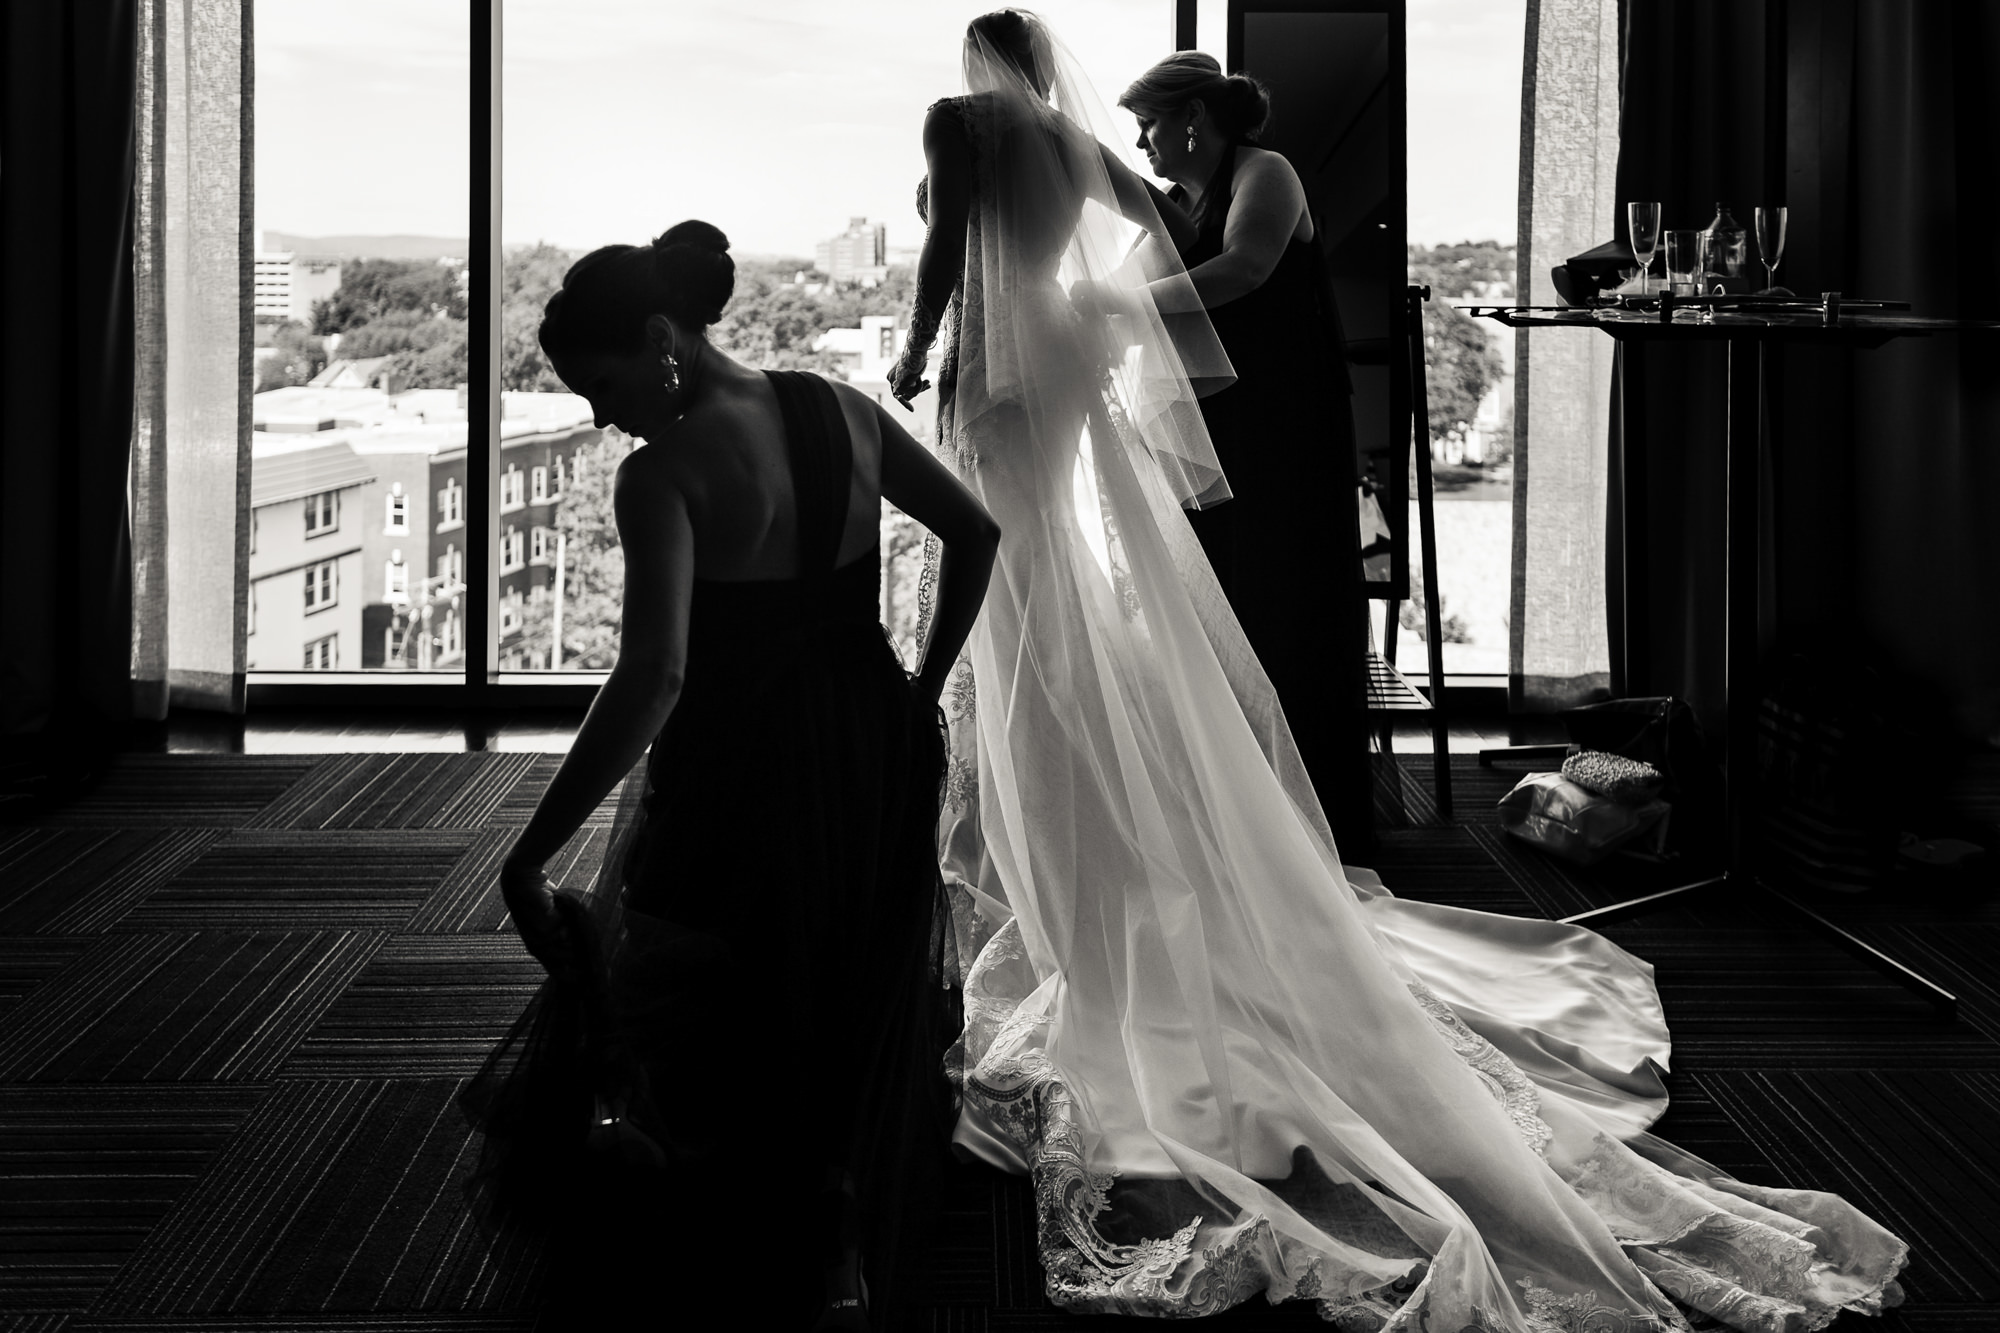 Bride in dramatic veil and gown getting ready - photo by JAG Studios